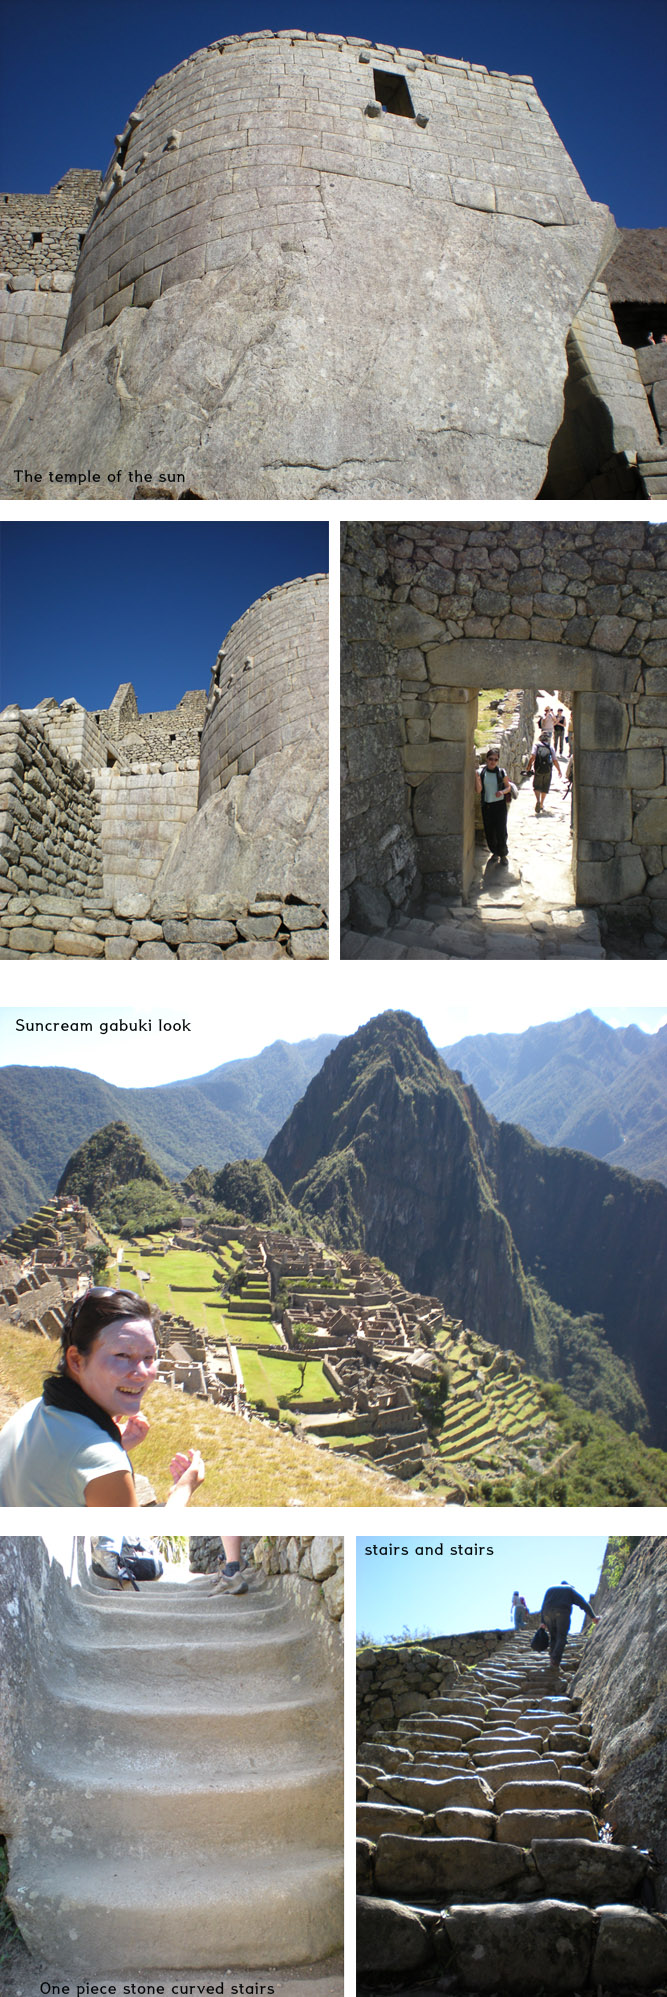 Trapezoid opening is original Inca style which is earthquake resistant.